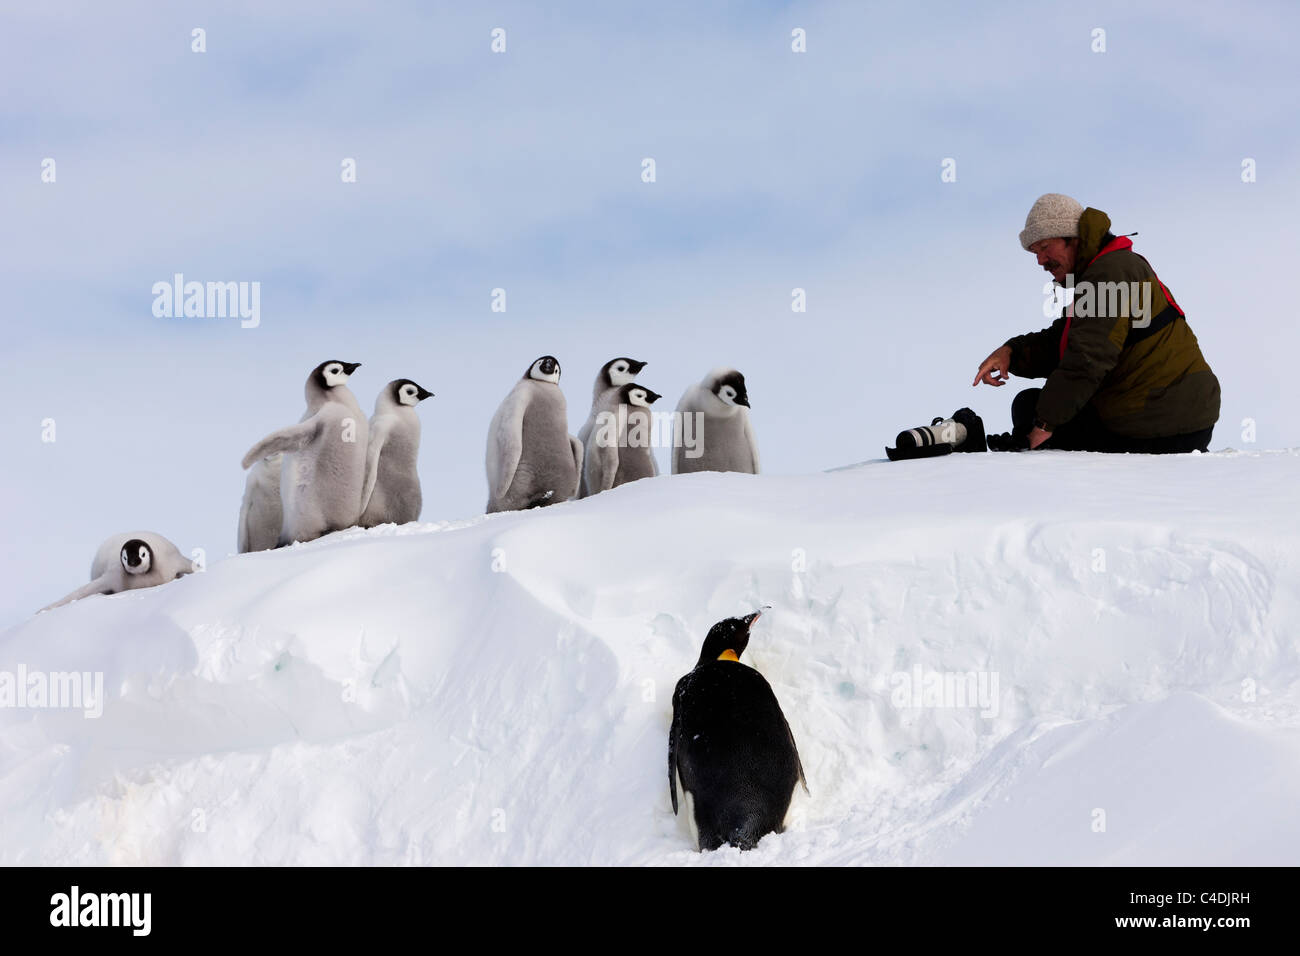 Funny view of Wildlife Photographer Jonathan Scott talking to cute Emperor Penguin Chicks on snow mound in Antarctica - Stock Image